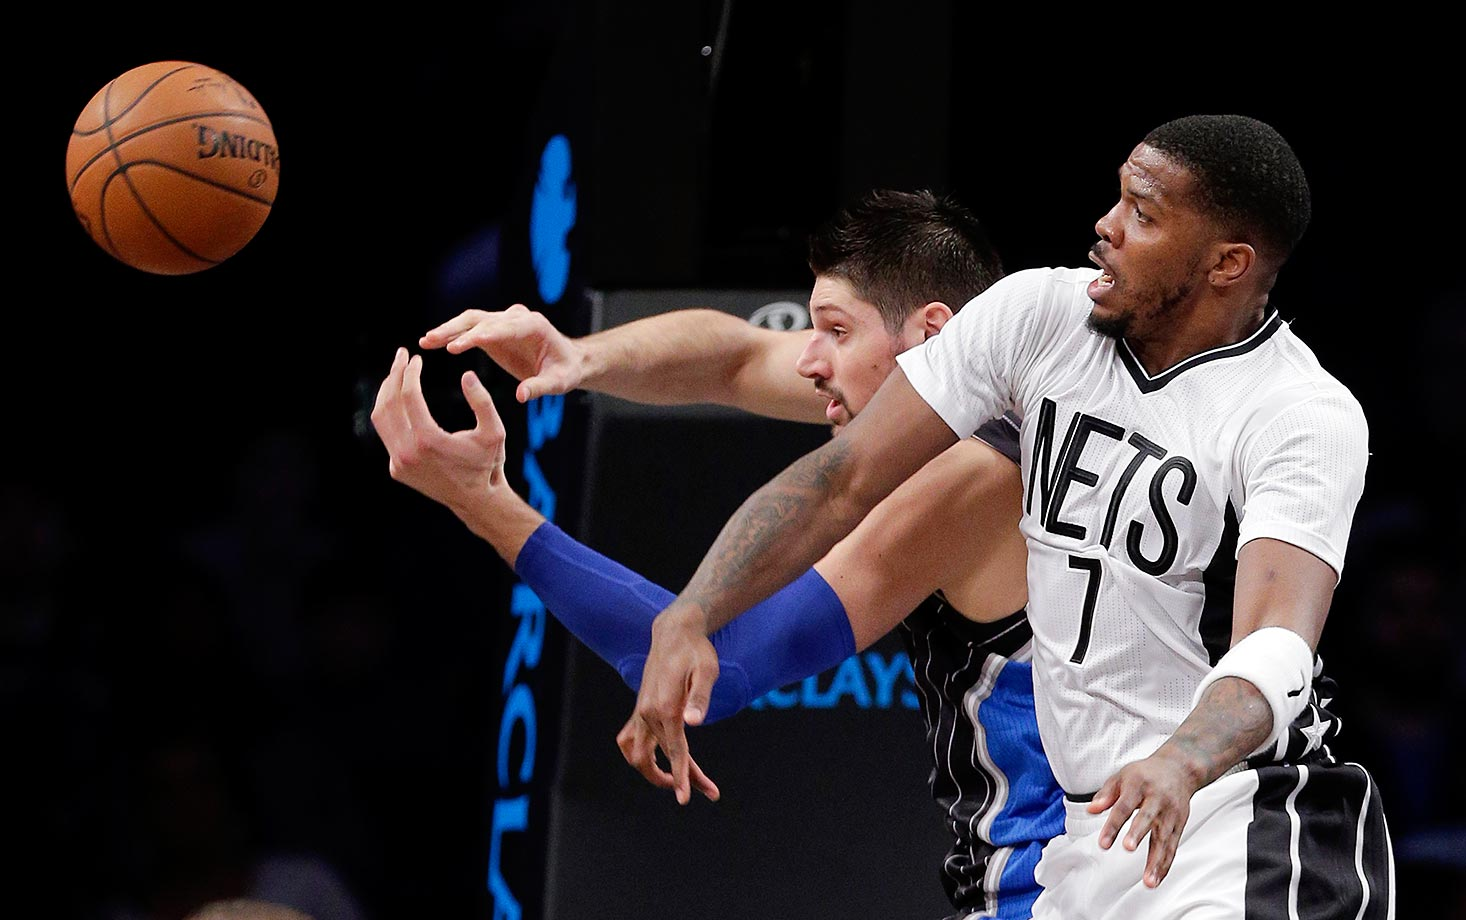 Nikola Vucevic of the Orlando Magic and Joe Johnson of the Brooklyn Nets battle for a rebound.